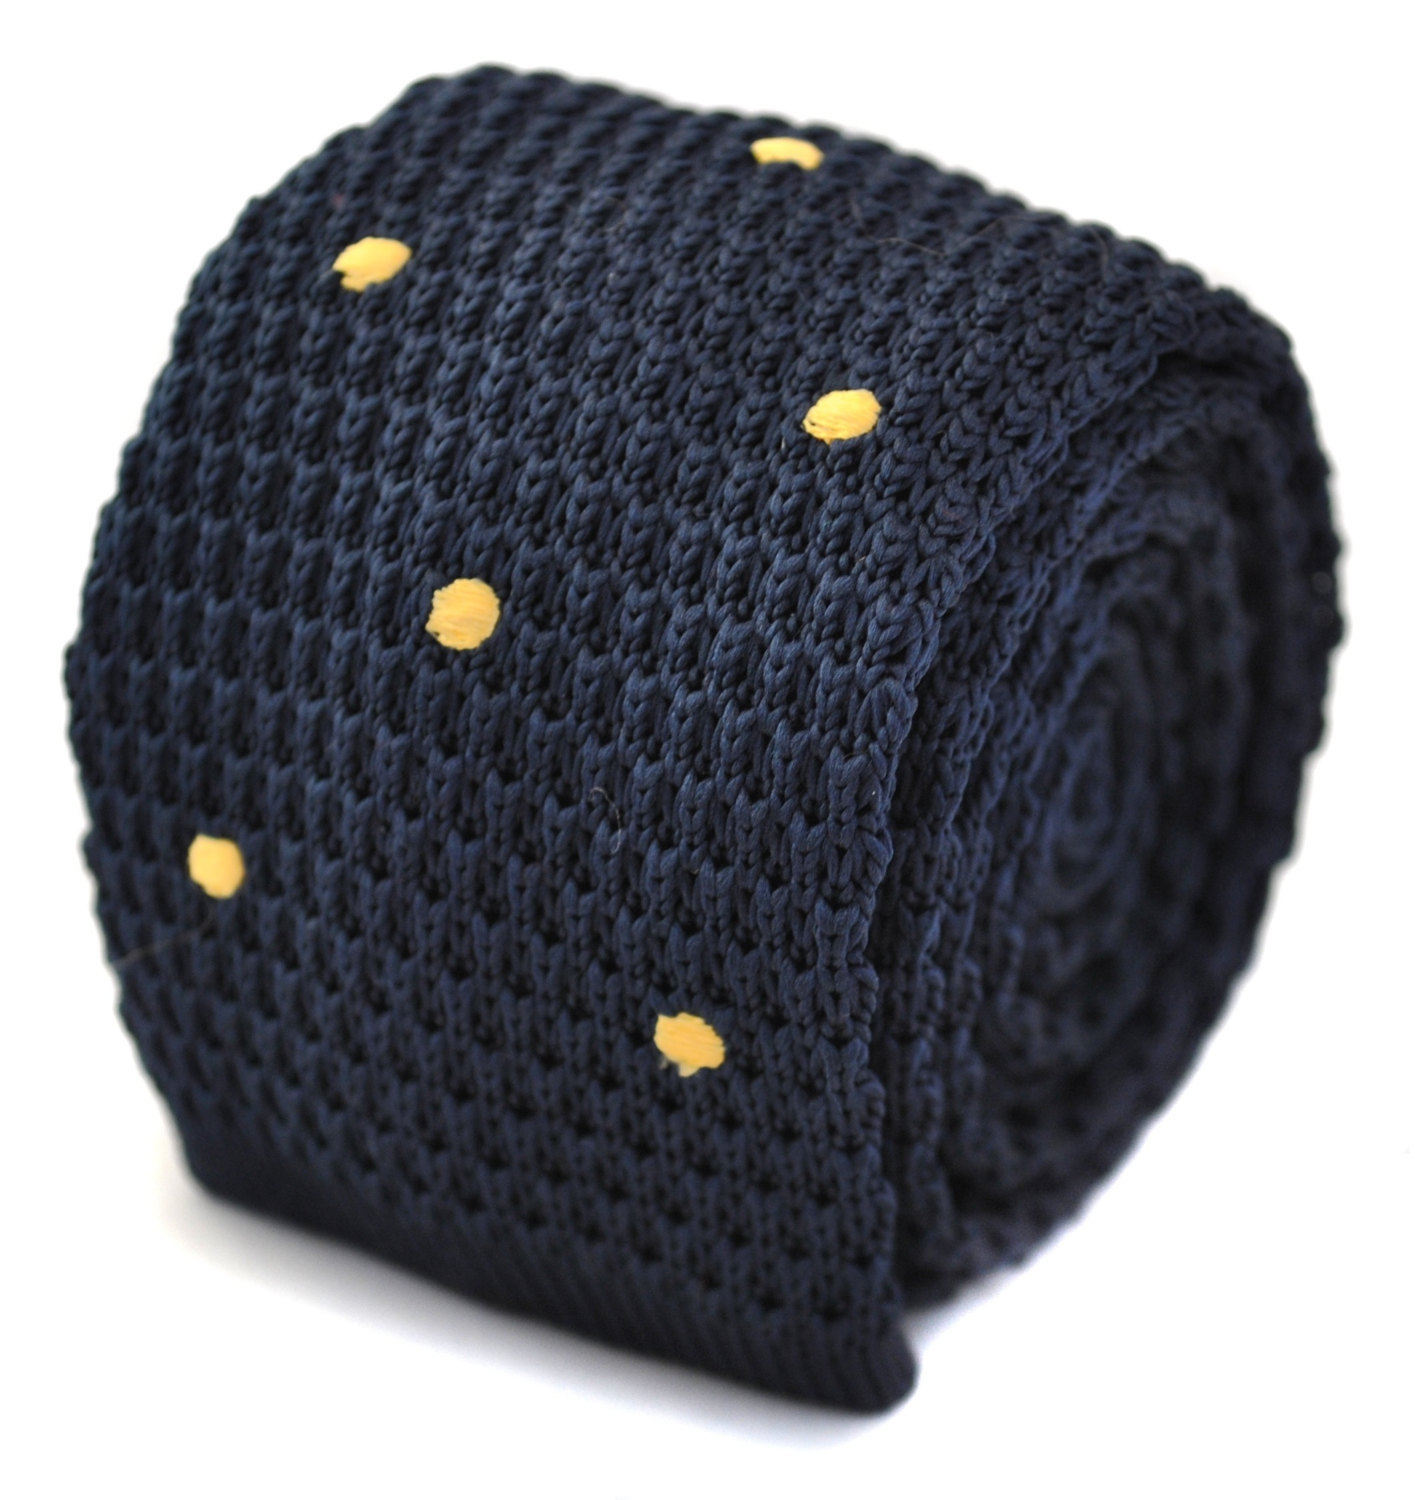 knitted navy and gold spotted skinny tie by Frederick Thomas FT1167